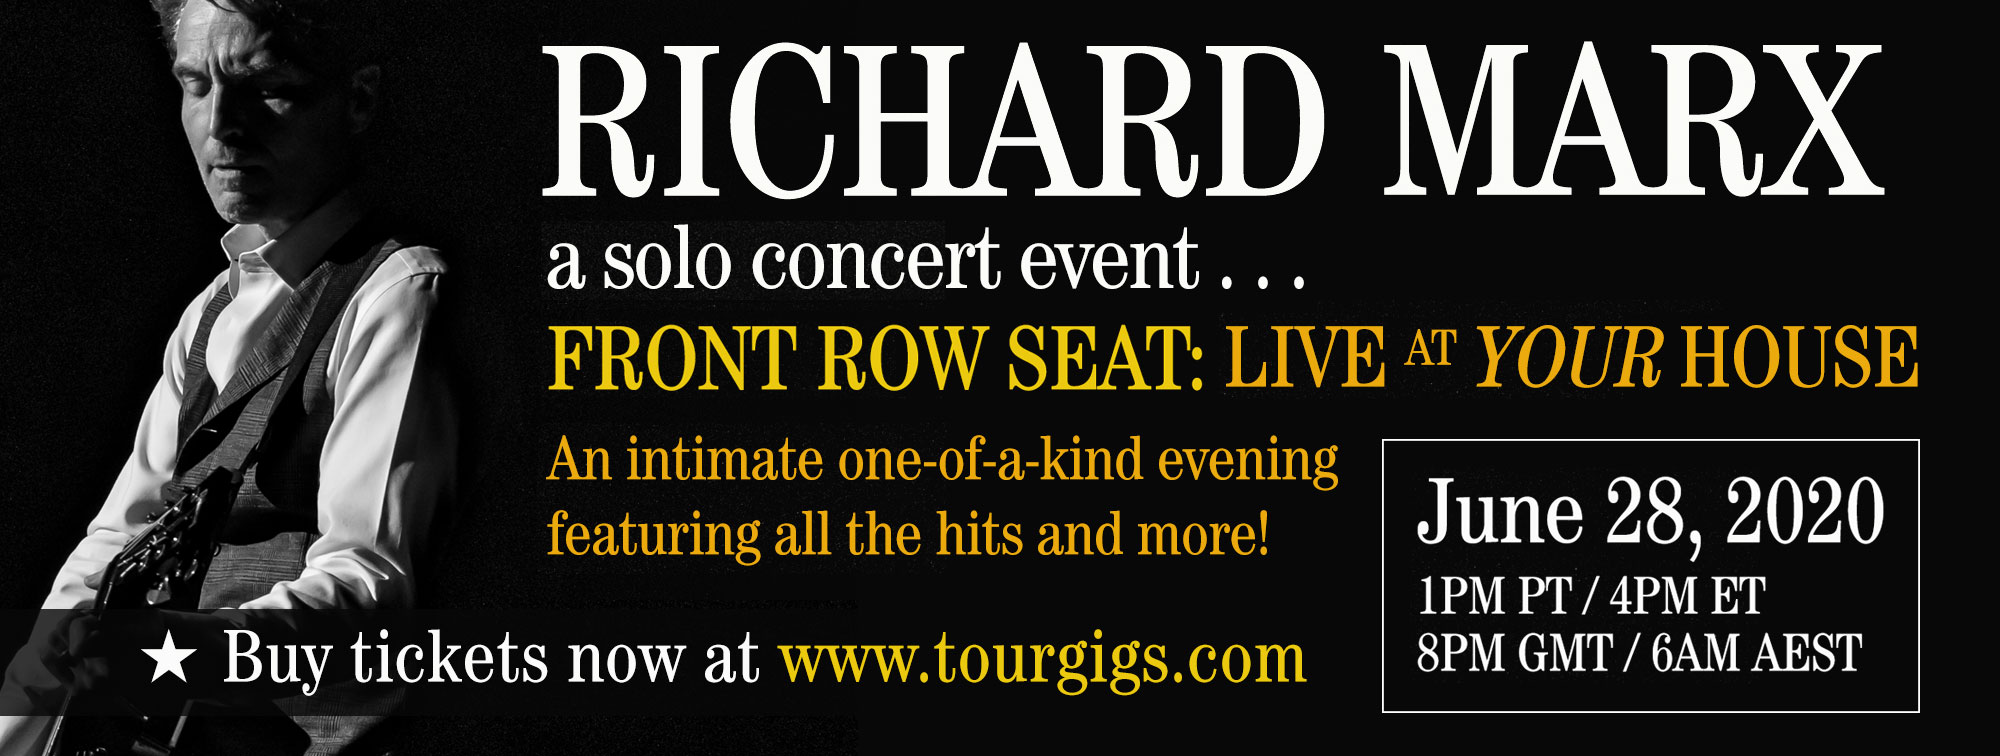 Richard Marx - Solo Concert Event